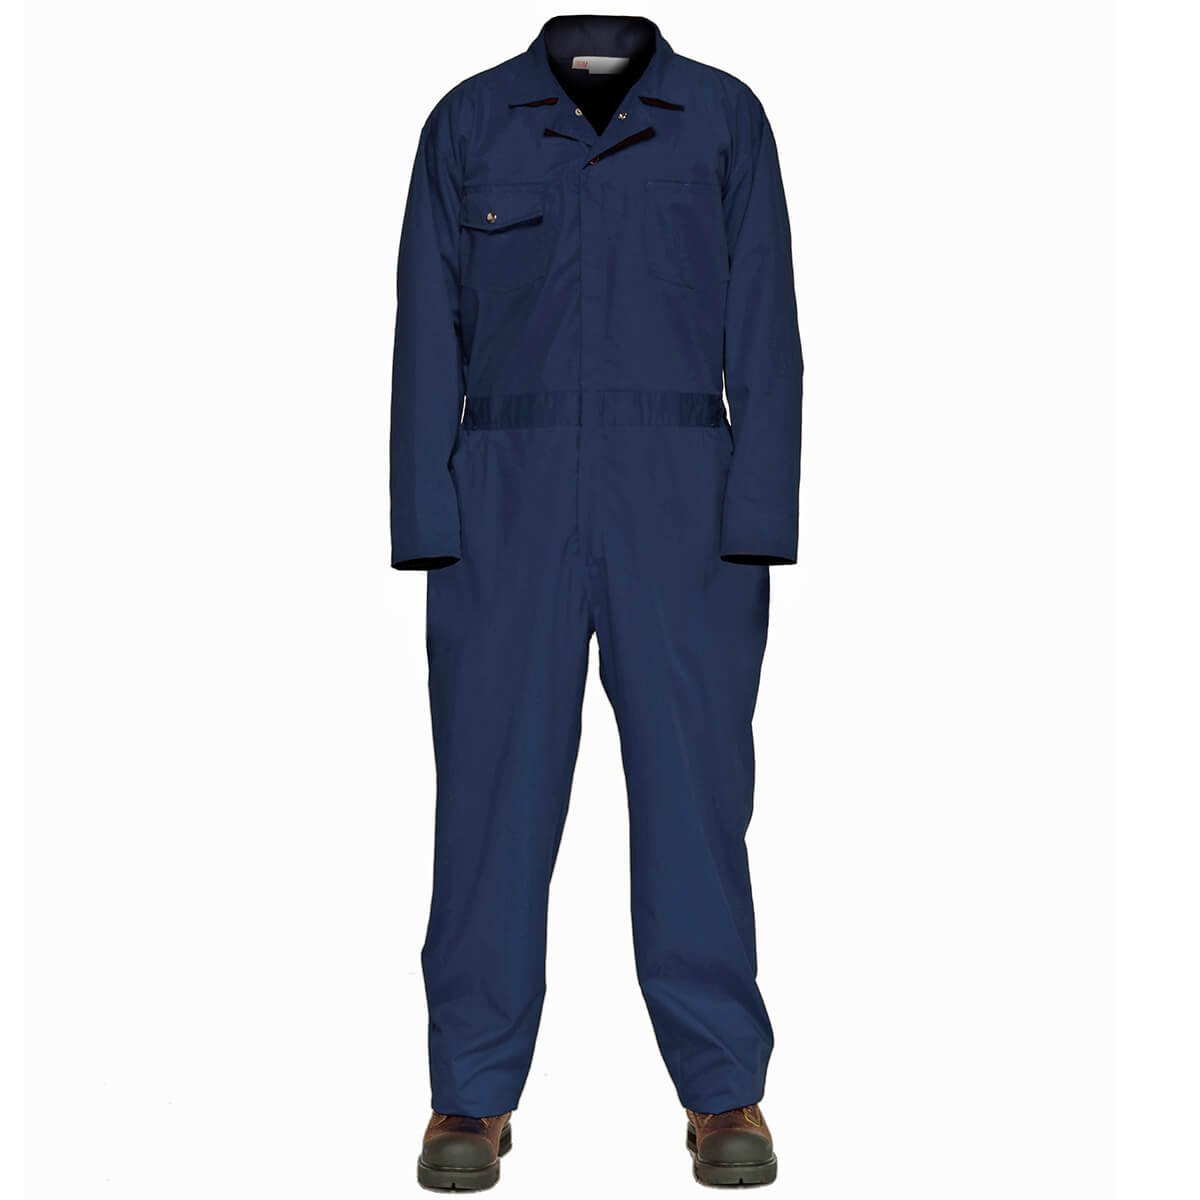 Style 761 Children's Navy Coveralls